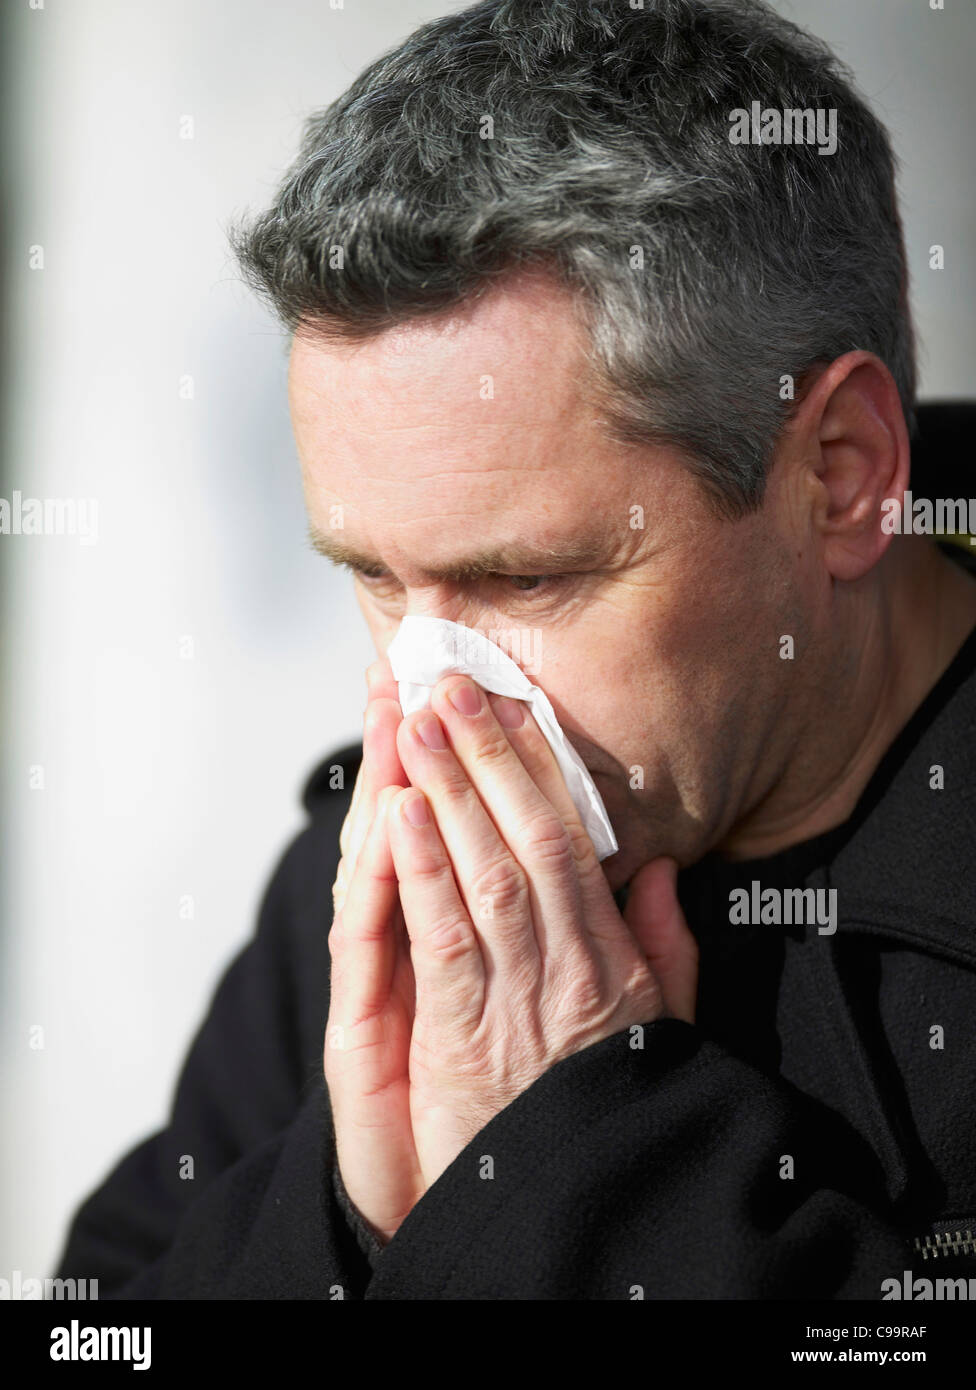 Germany, Hamburg, Mature man blowing nose with tissue, close-up - Stock Image